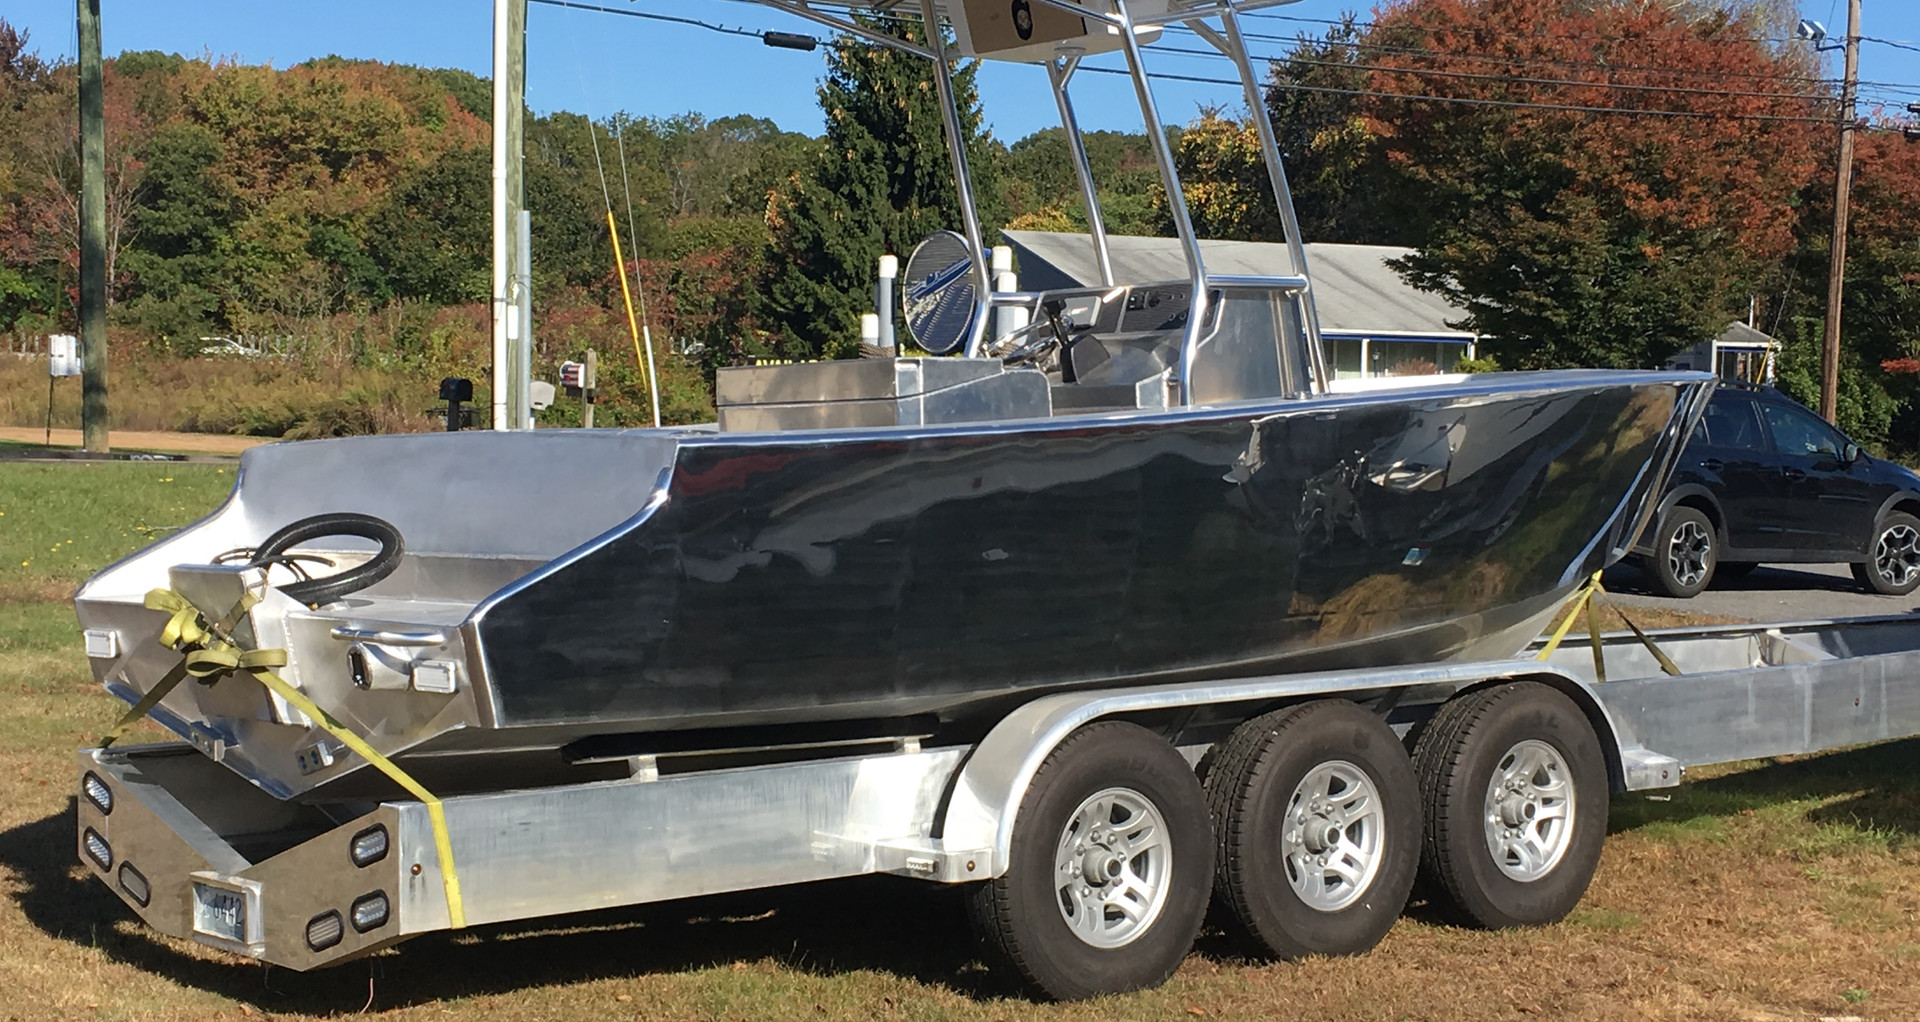 20' Center Console, One3 Powerboats